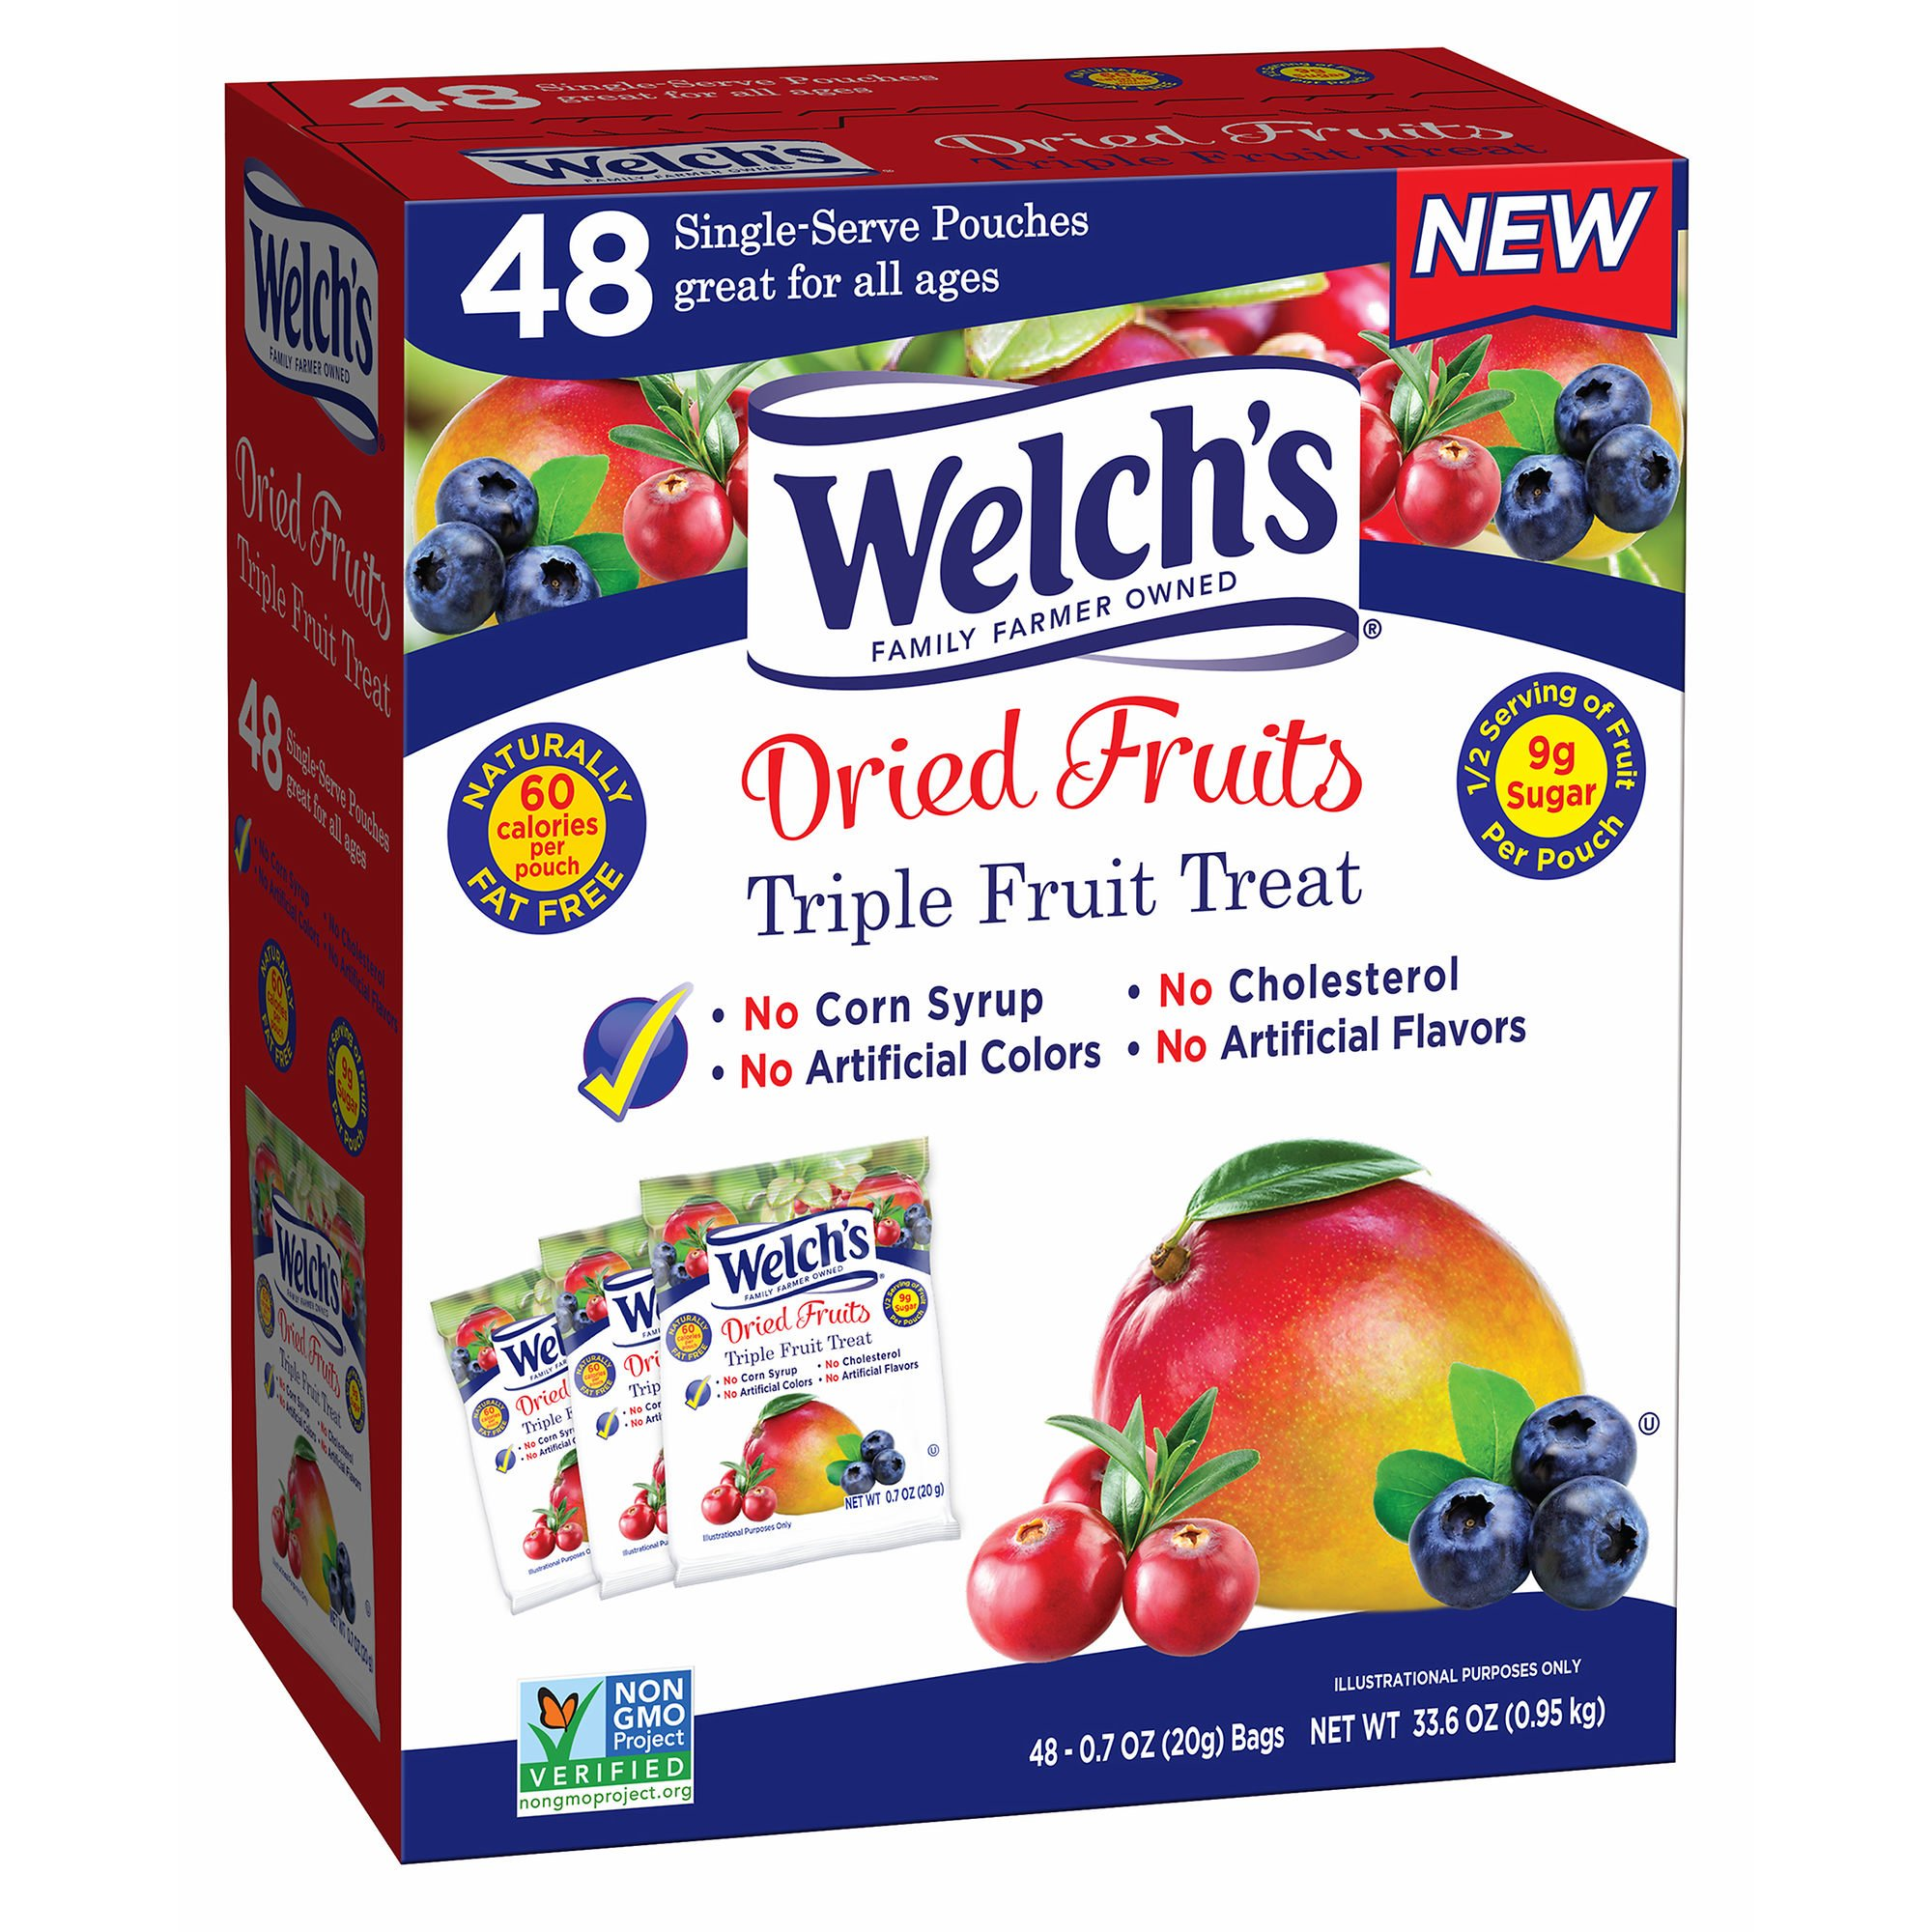 Welch's Dried Fruit Triple Fruit Treat Pouches, 48 ct. (pack of 6)